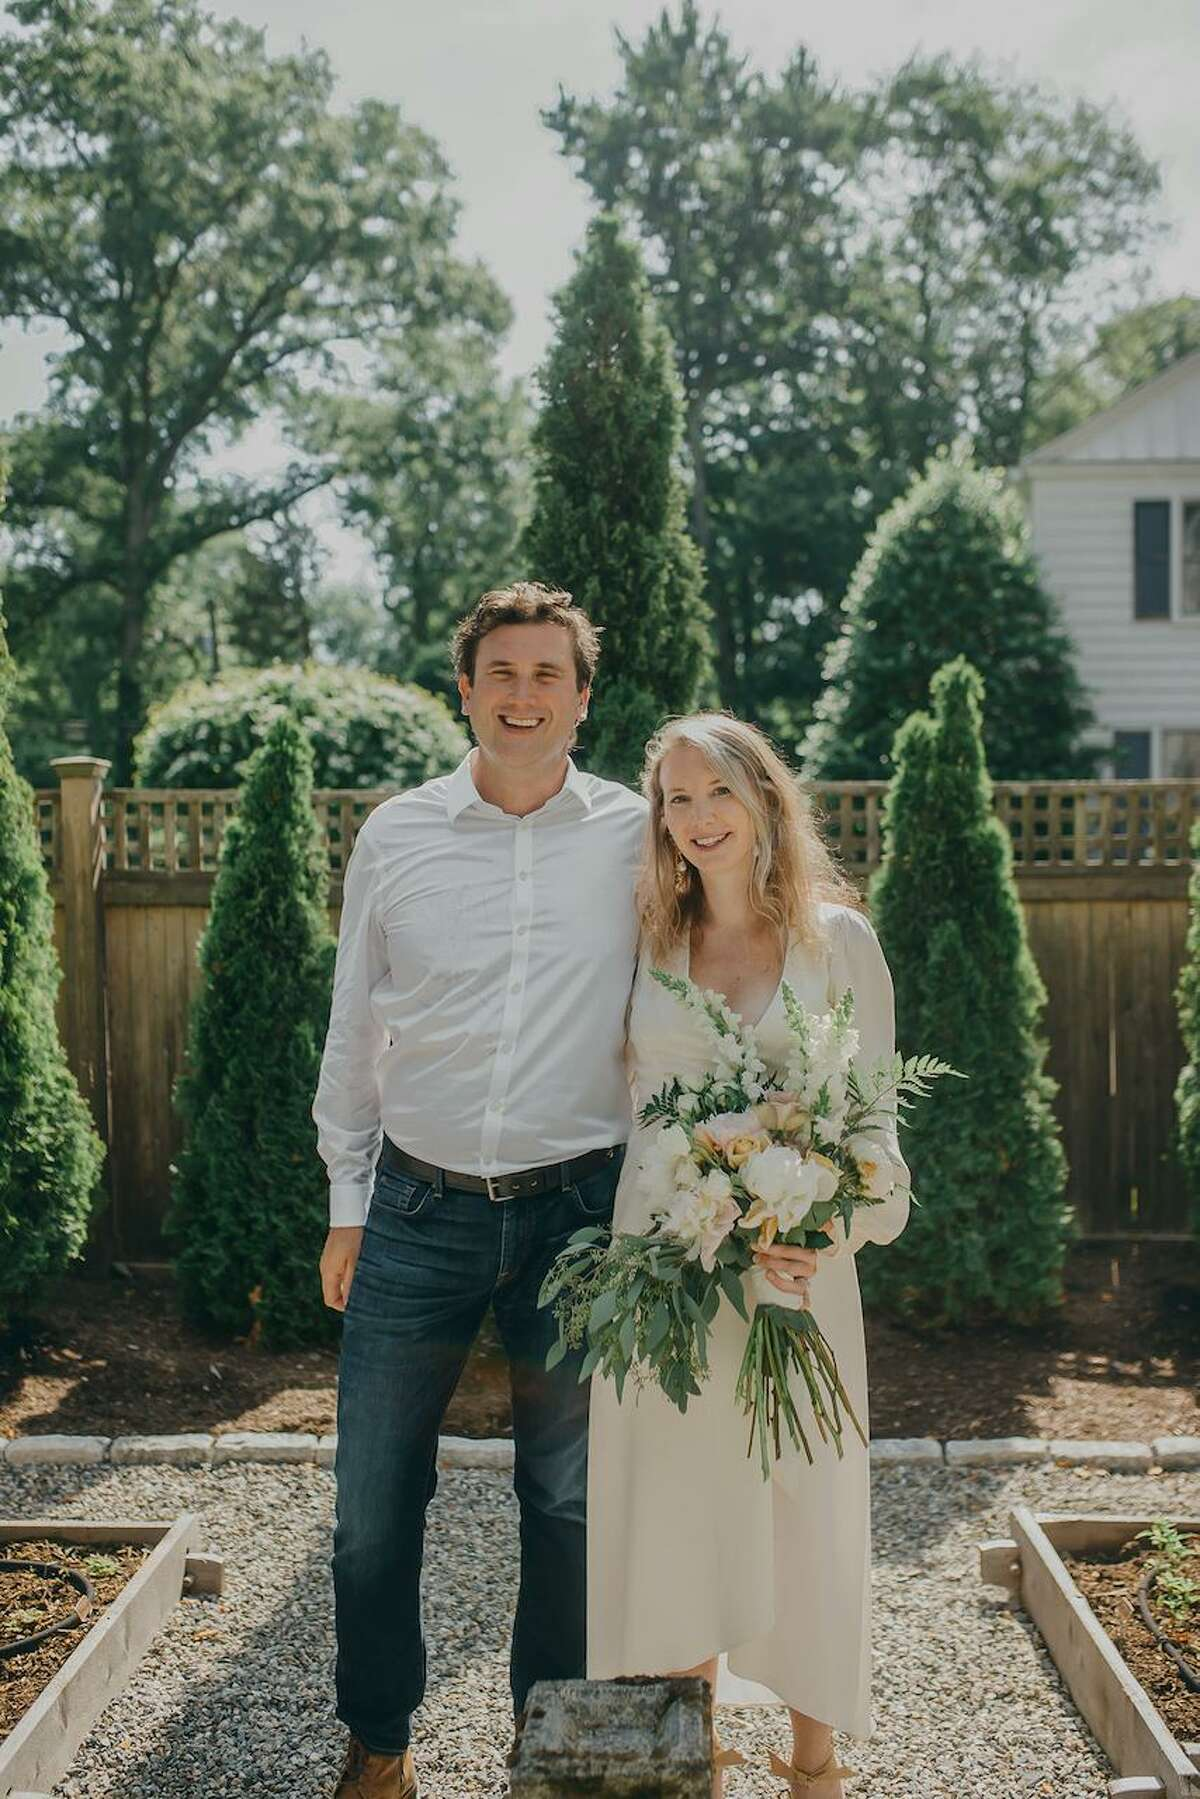 Darien High graduate Amanda Fitzgerald Fuller was married to Richard Henry Samson on the first day of summer.